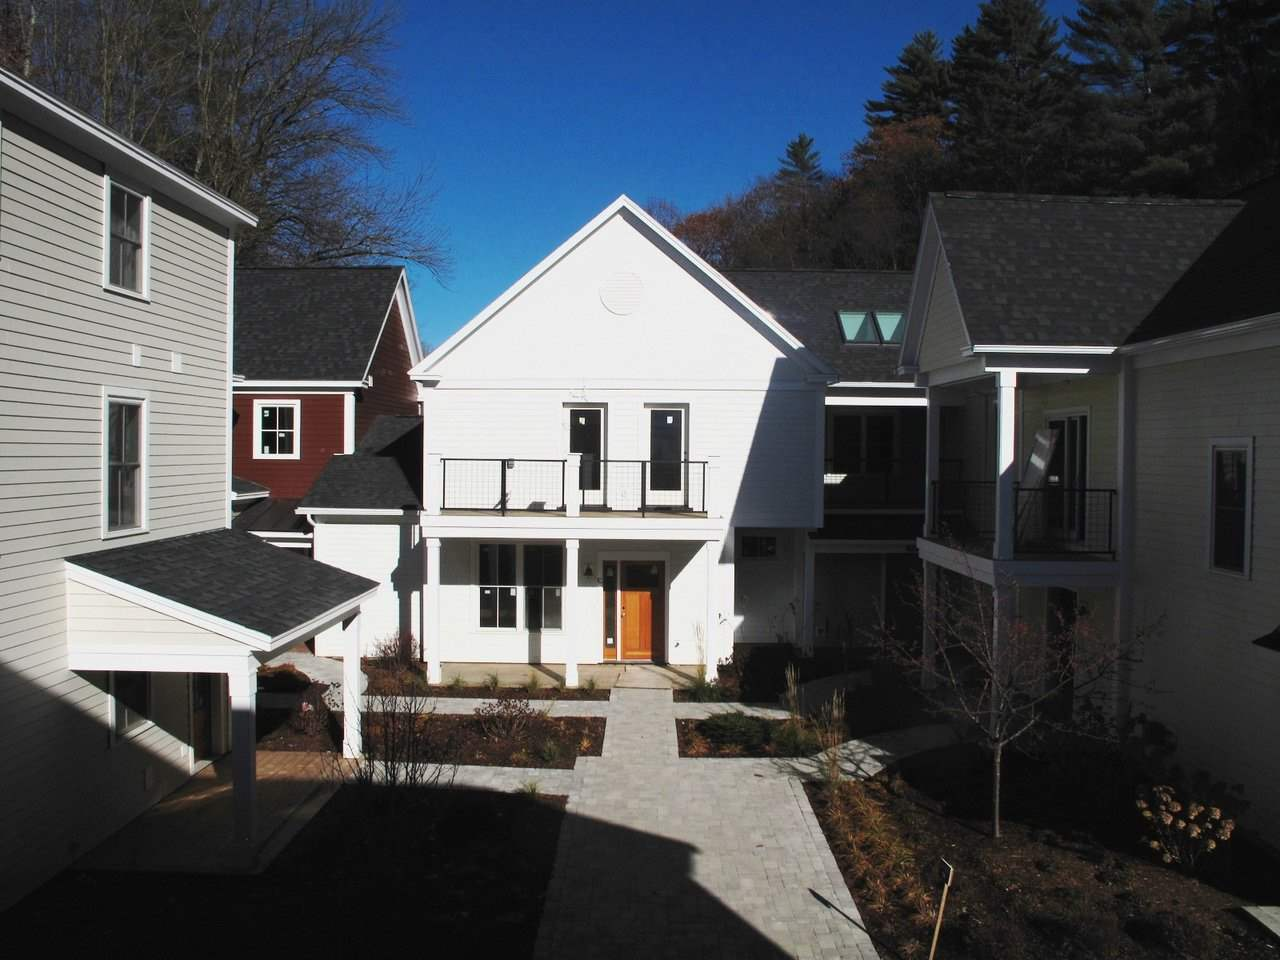 Sold property in Stowe